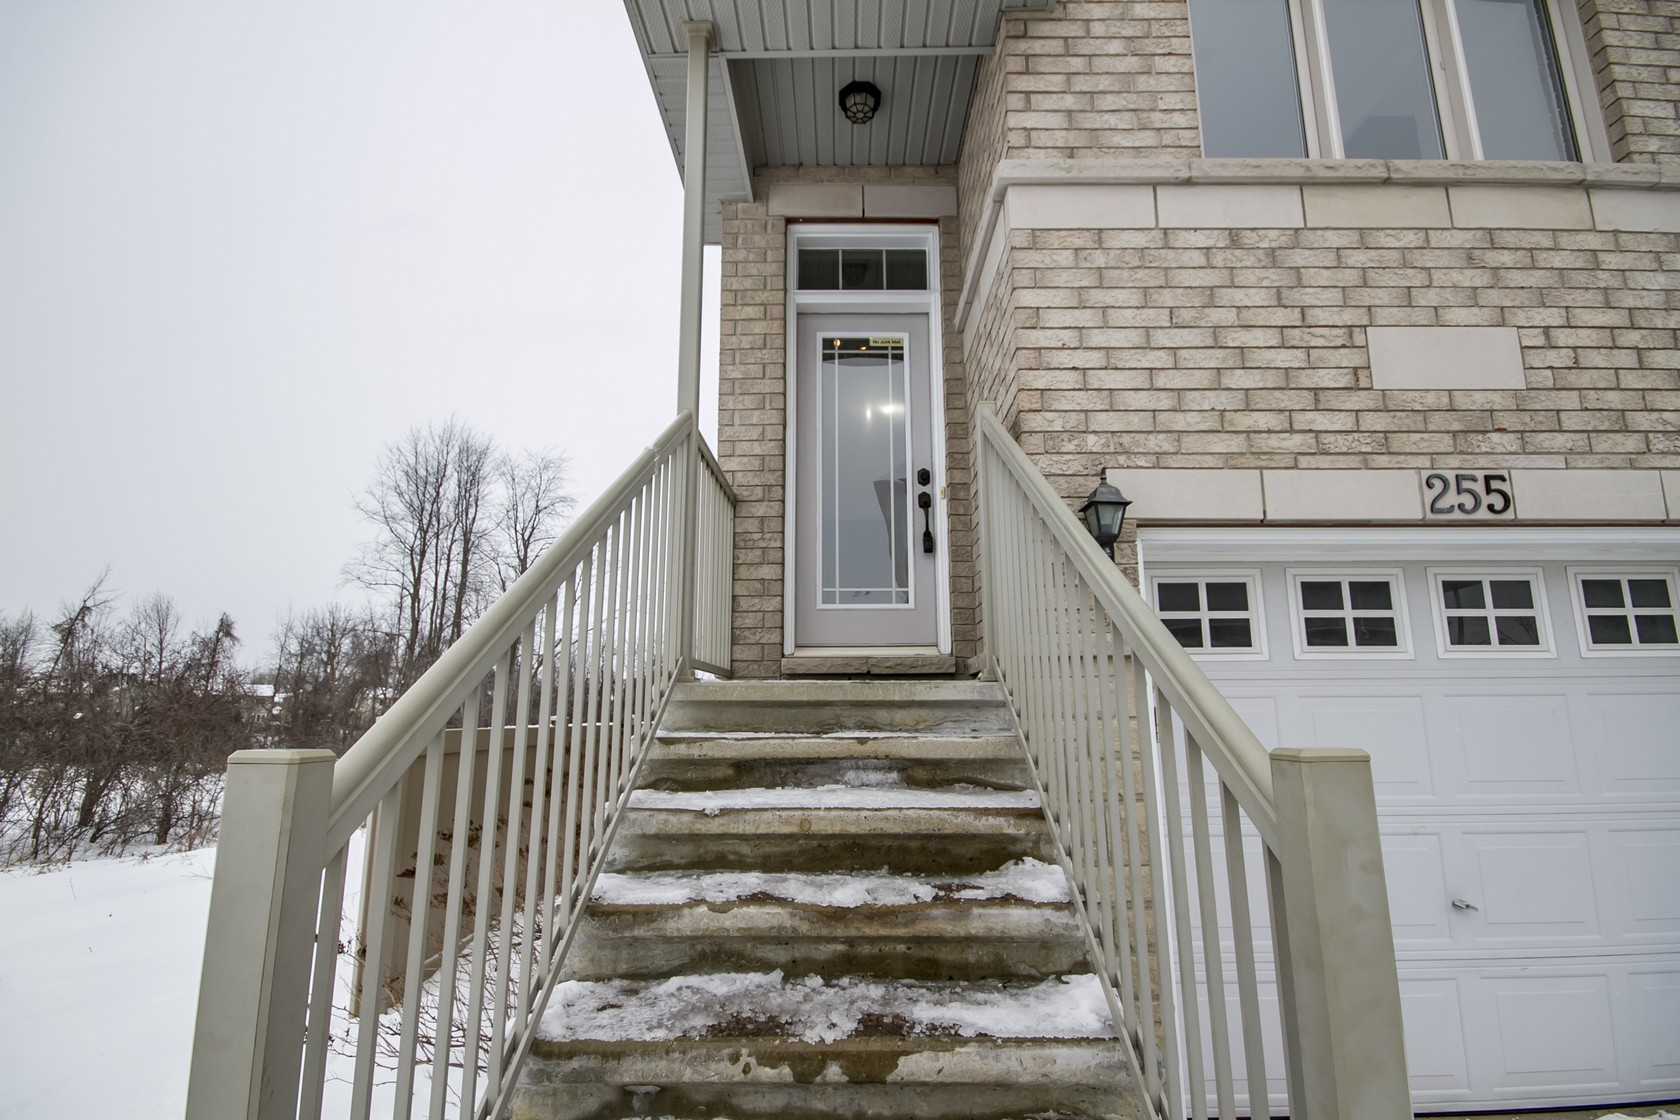 255 Stroget PrivateOttawa, Ontario  K2E 0A - Photo 2 - RP6073629651